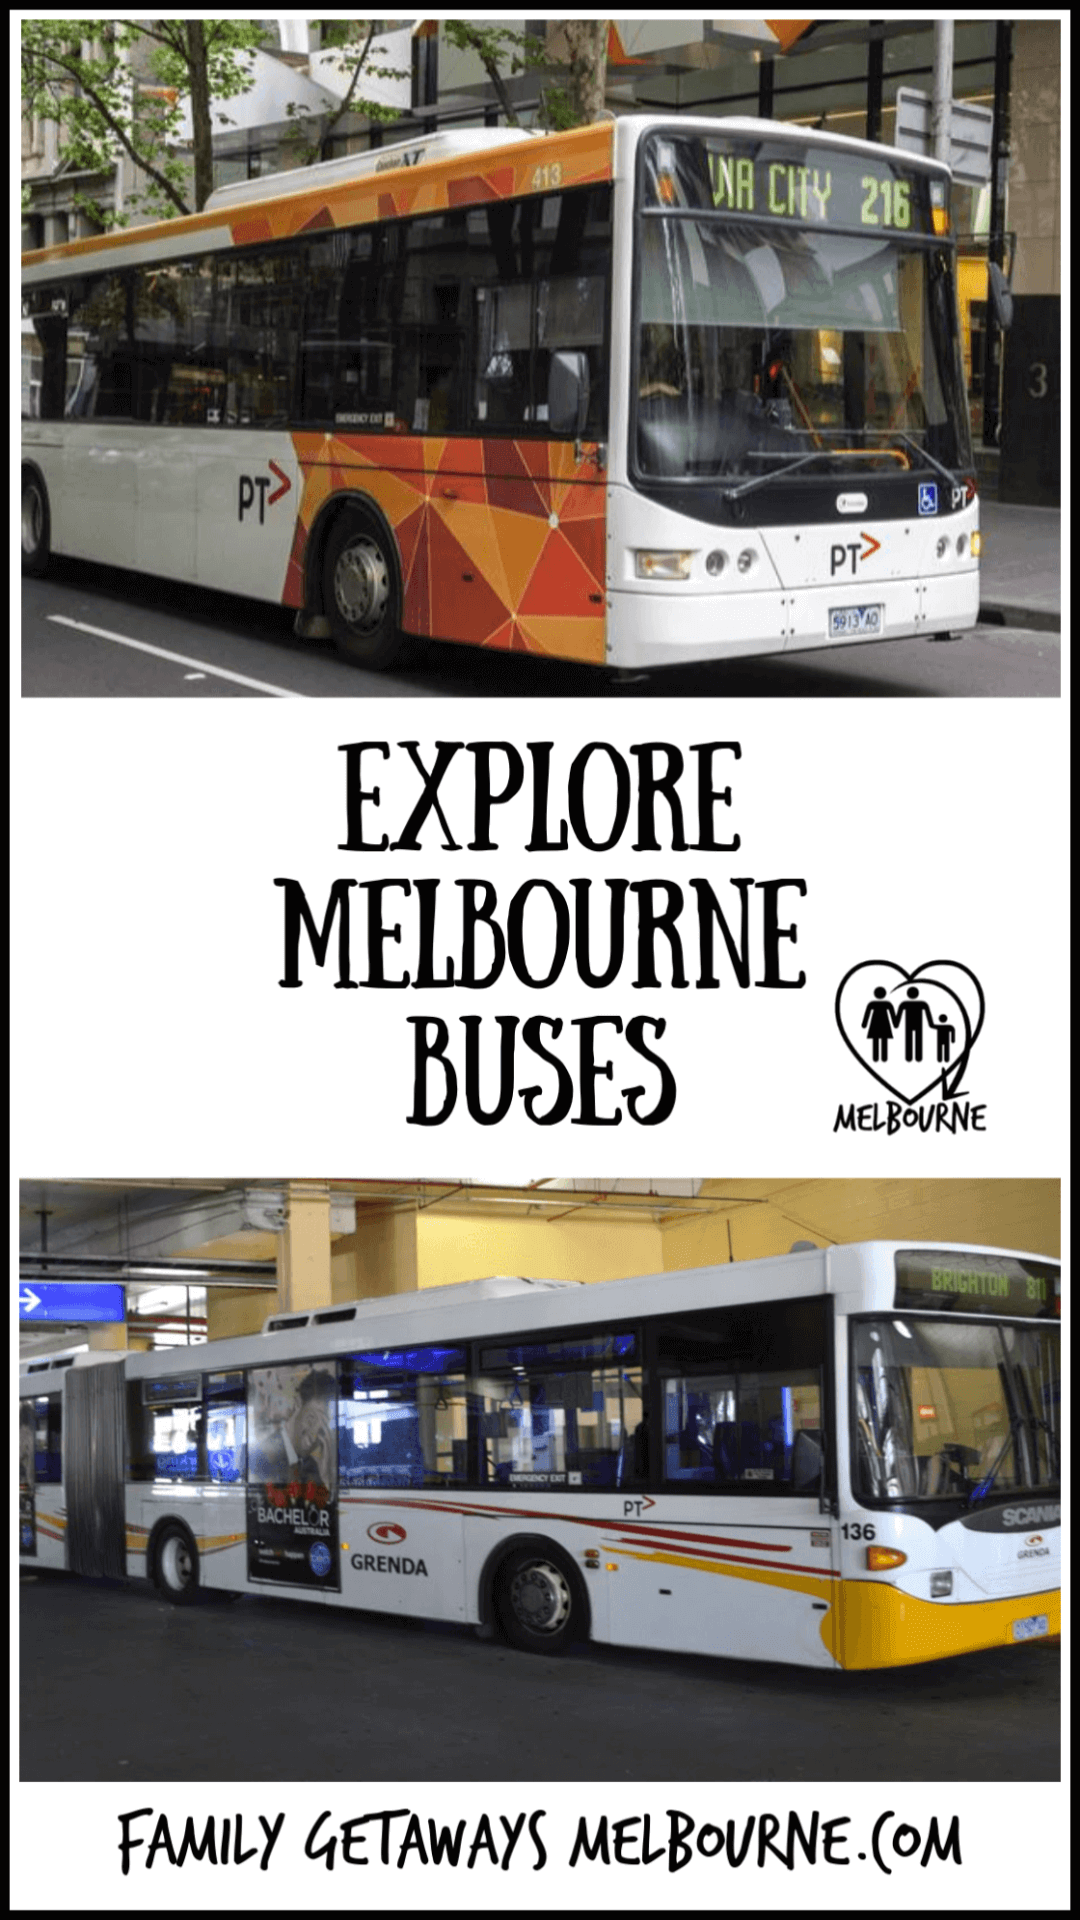 Melbourne Bus service is part of the public transport system for Melbourne and it's suburbs